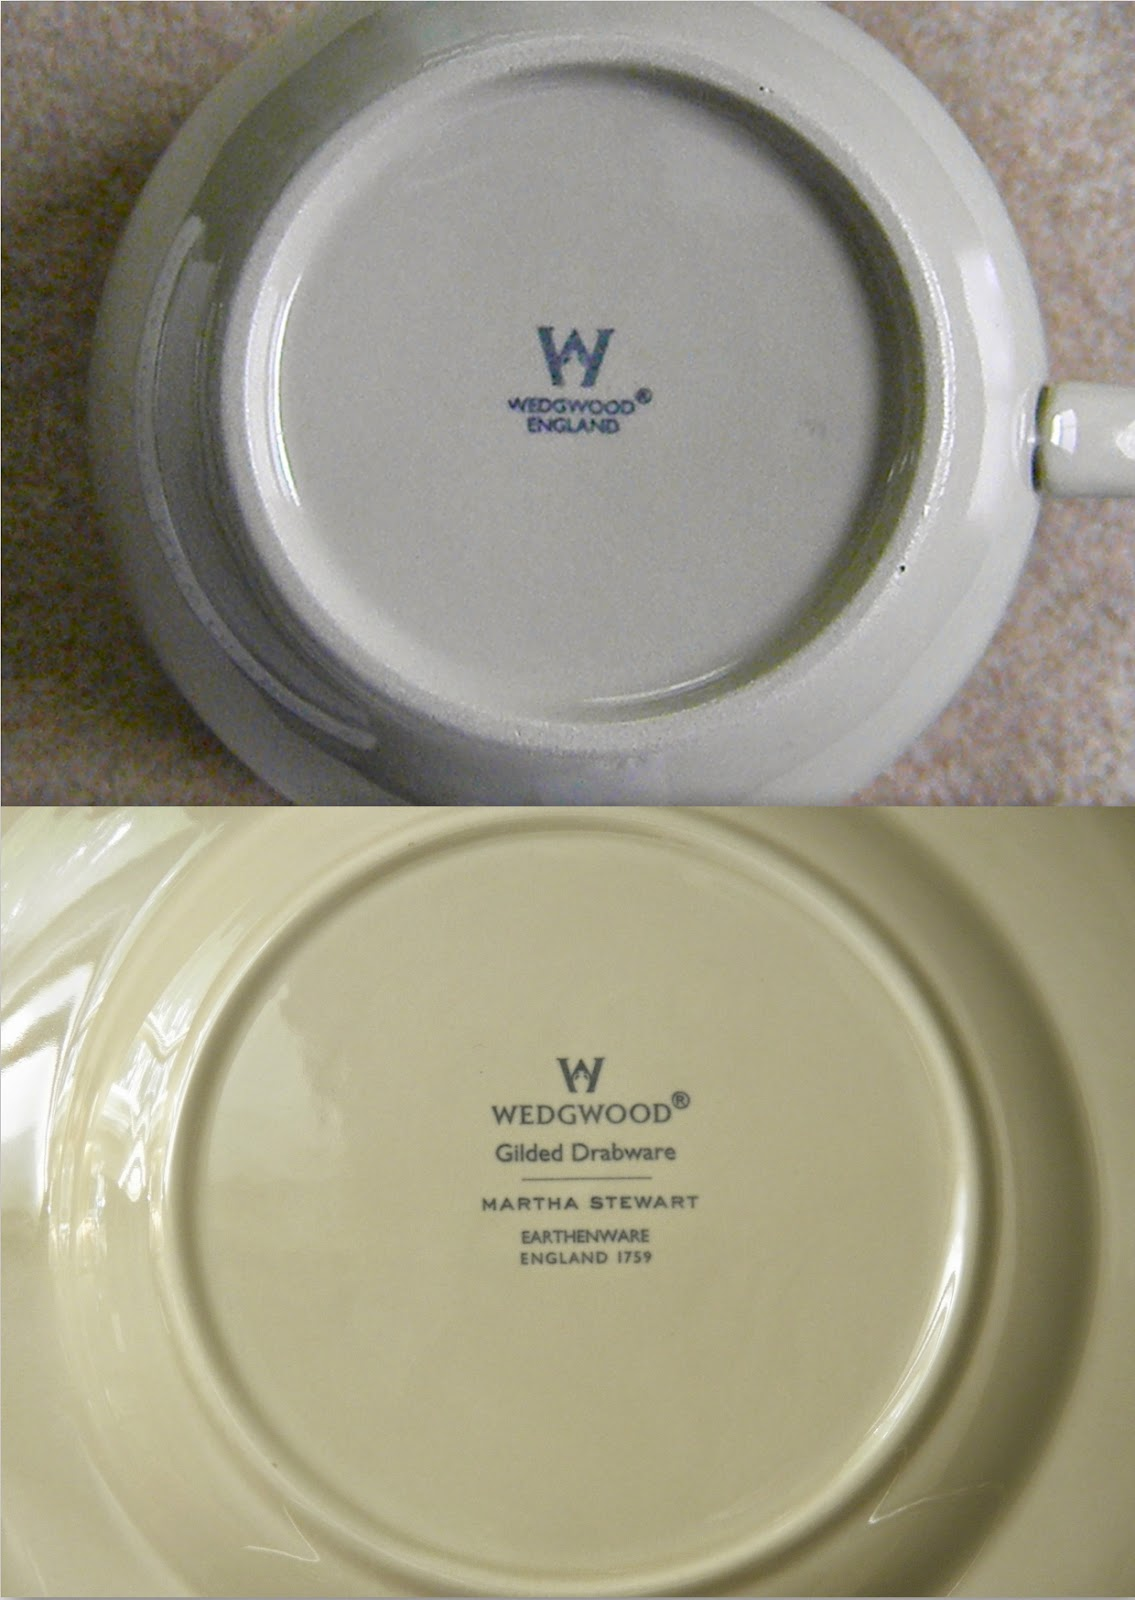 Collectors take note the gilded teacup u0026 the egg cups have a pared down version of the Wedgwood markings. The top photo shows you what each gilded teacup ... & Good Things by David: Wedgwood Drabware